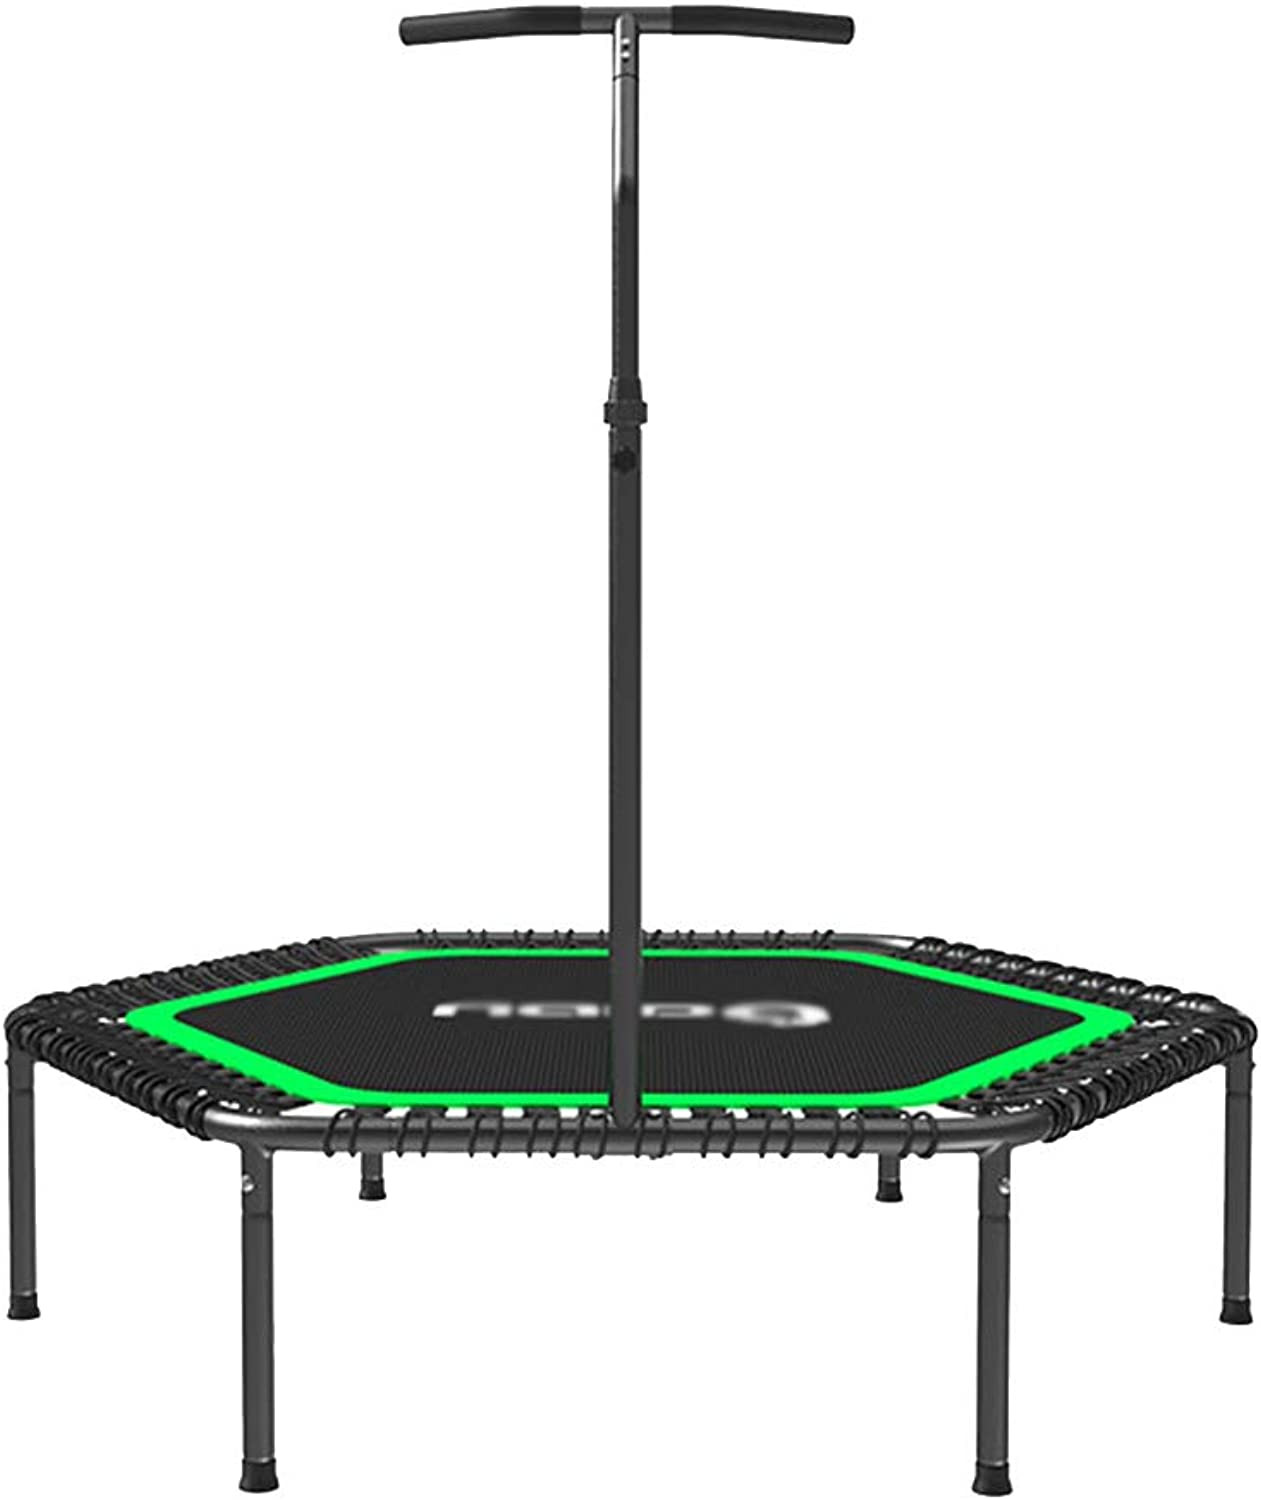 Trampolines With Adjustable Handrail, Adult Gym Household Yoga Indoor Lose Weight Bouncing Bed